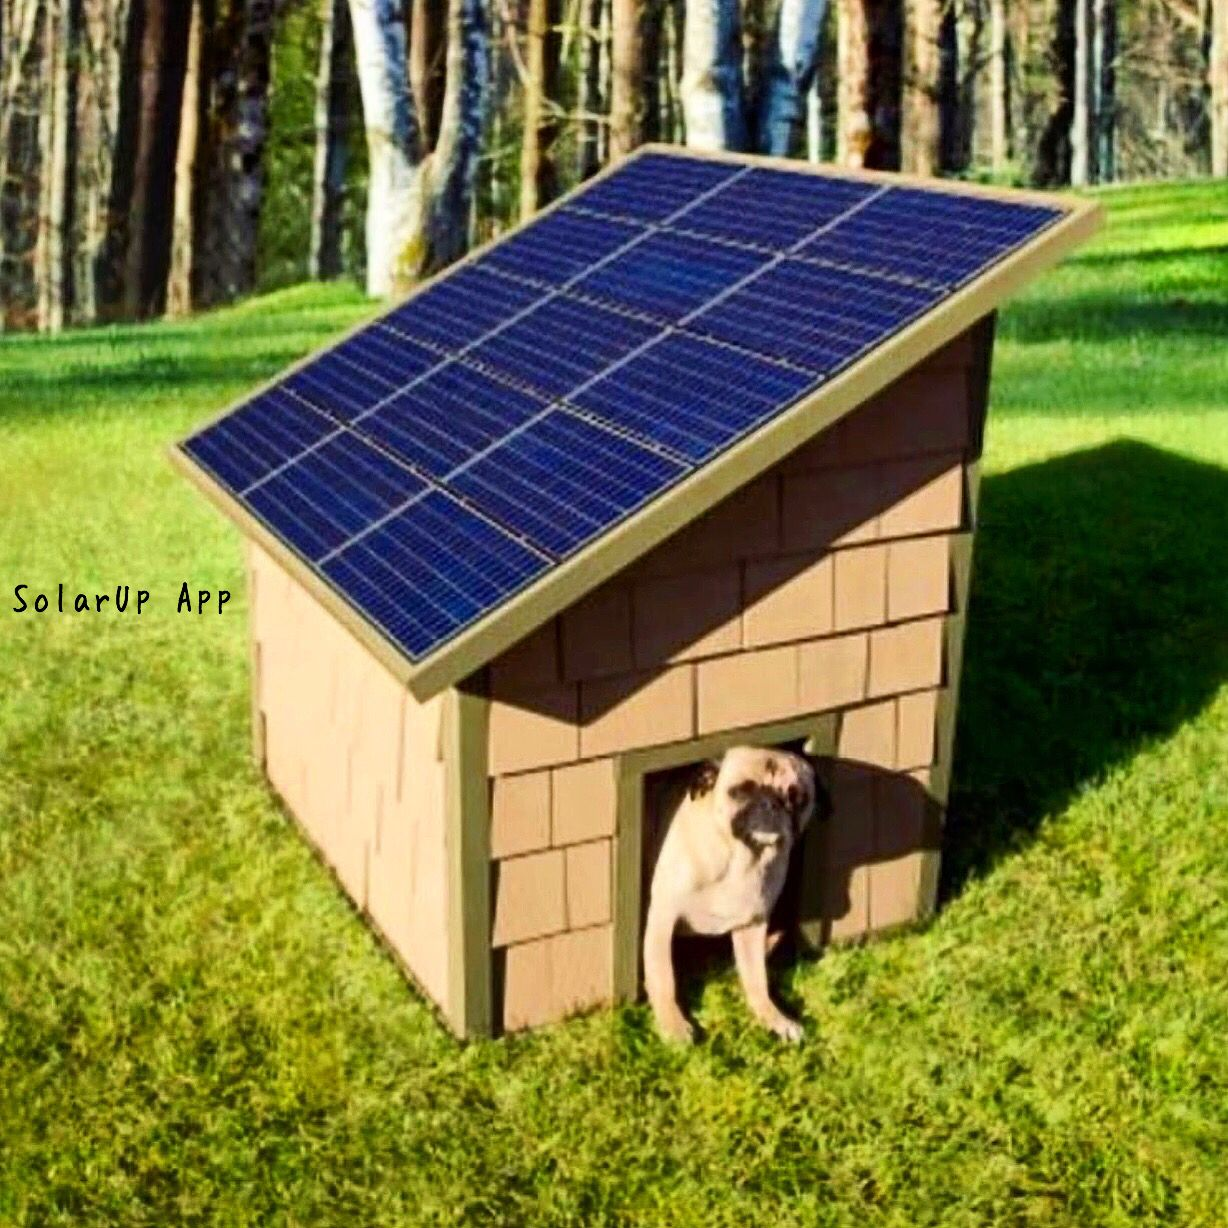 Put It On The Dog House The New Solarup App Mobile